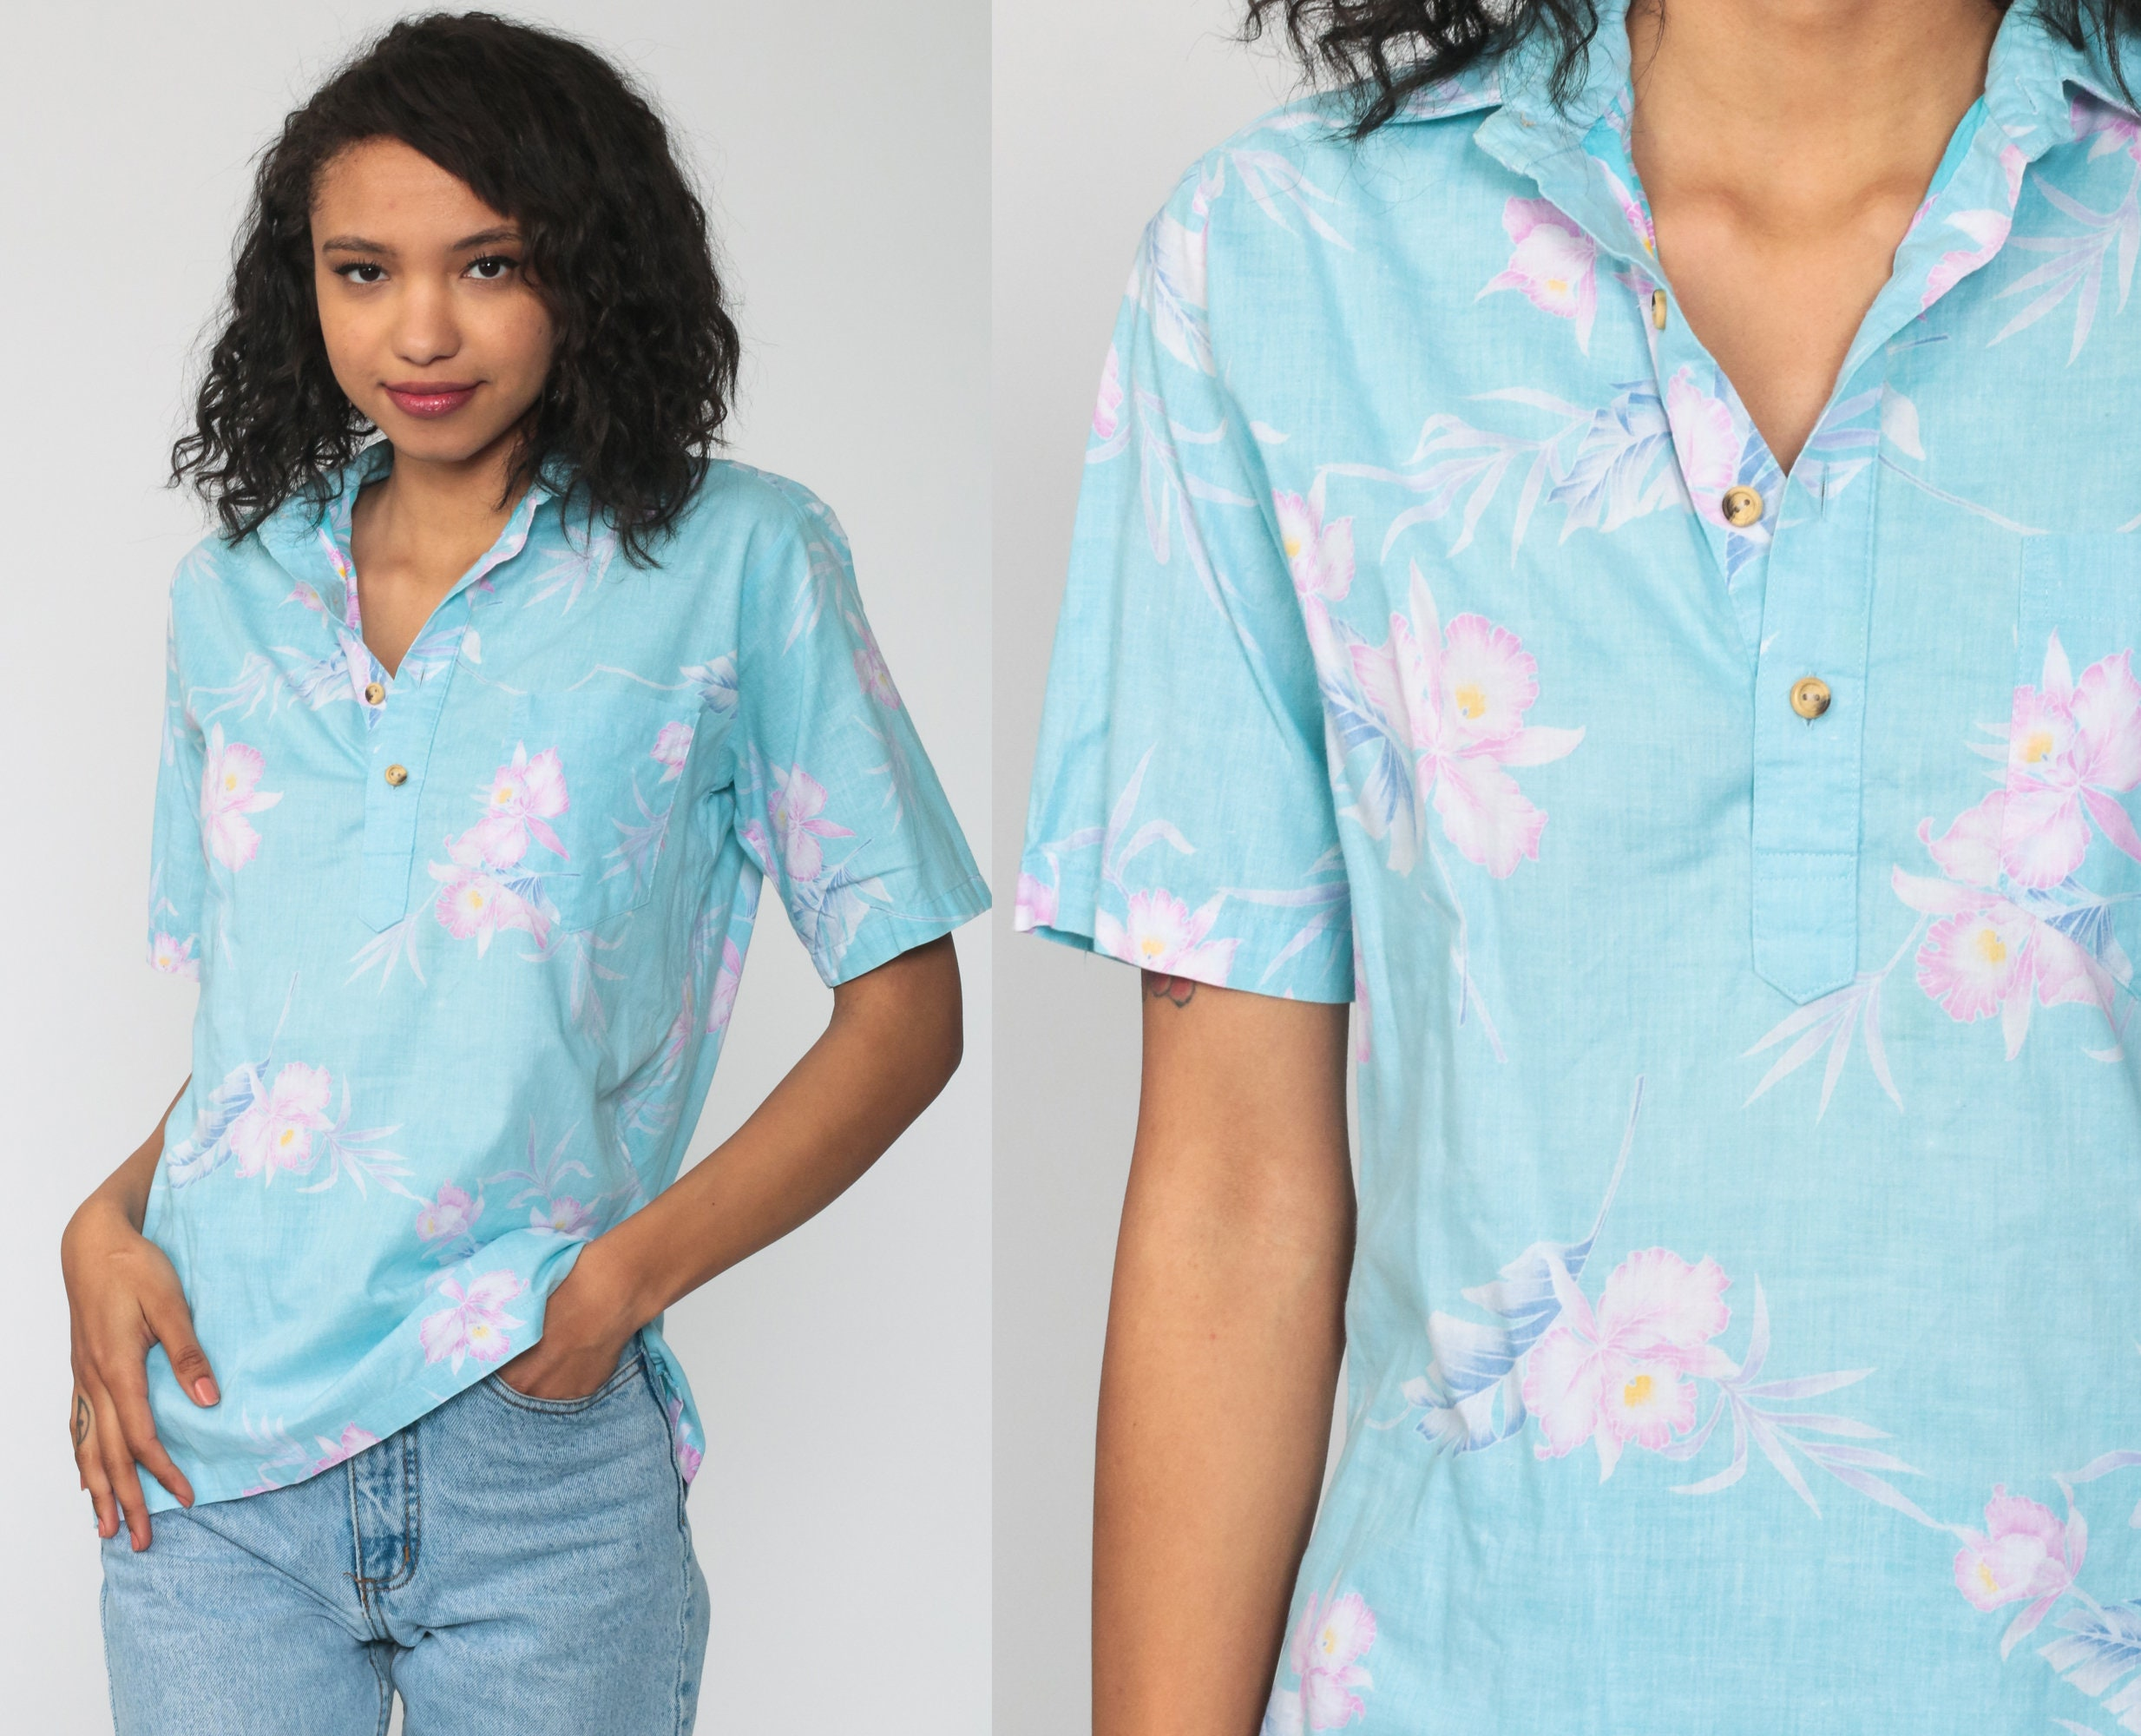 Vintage Hawaiian Womens Abstract Print Blouse with Side Splits Multicolor Pastel colors M size Long Sleeve Spanish Shirt Hipster style